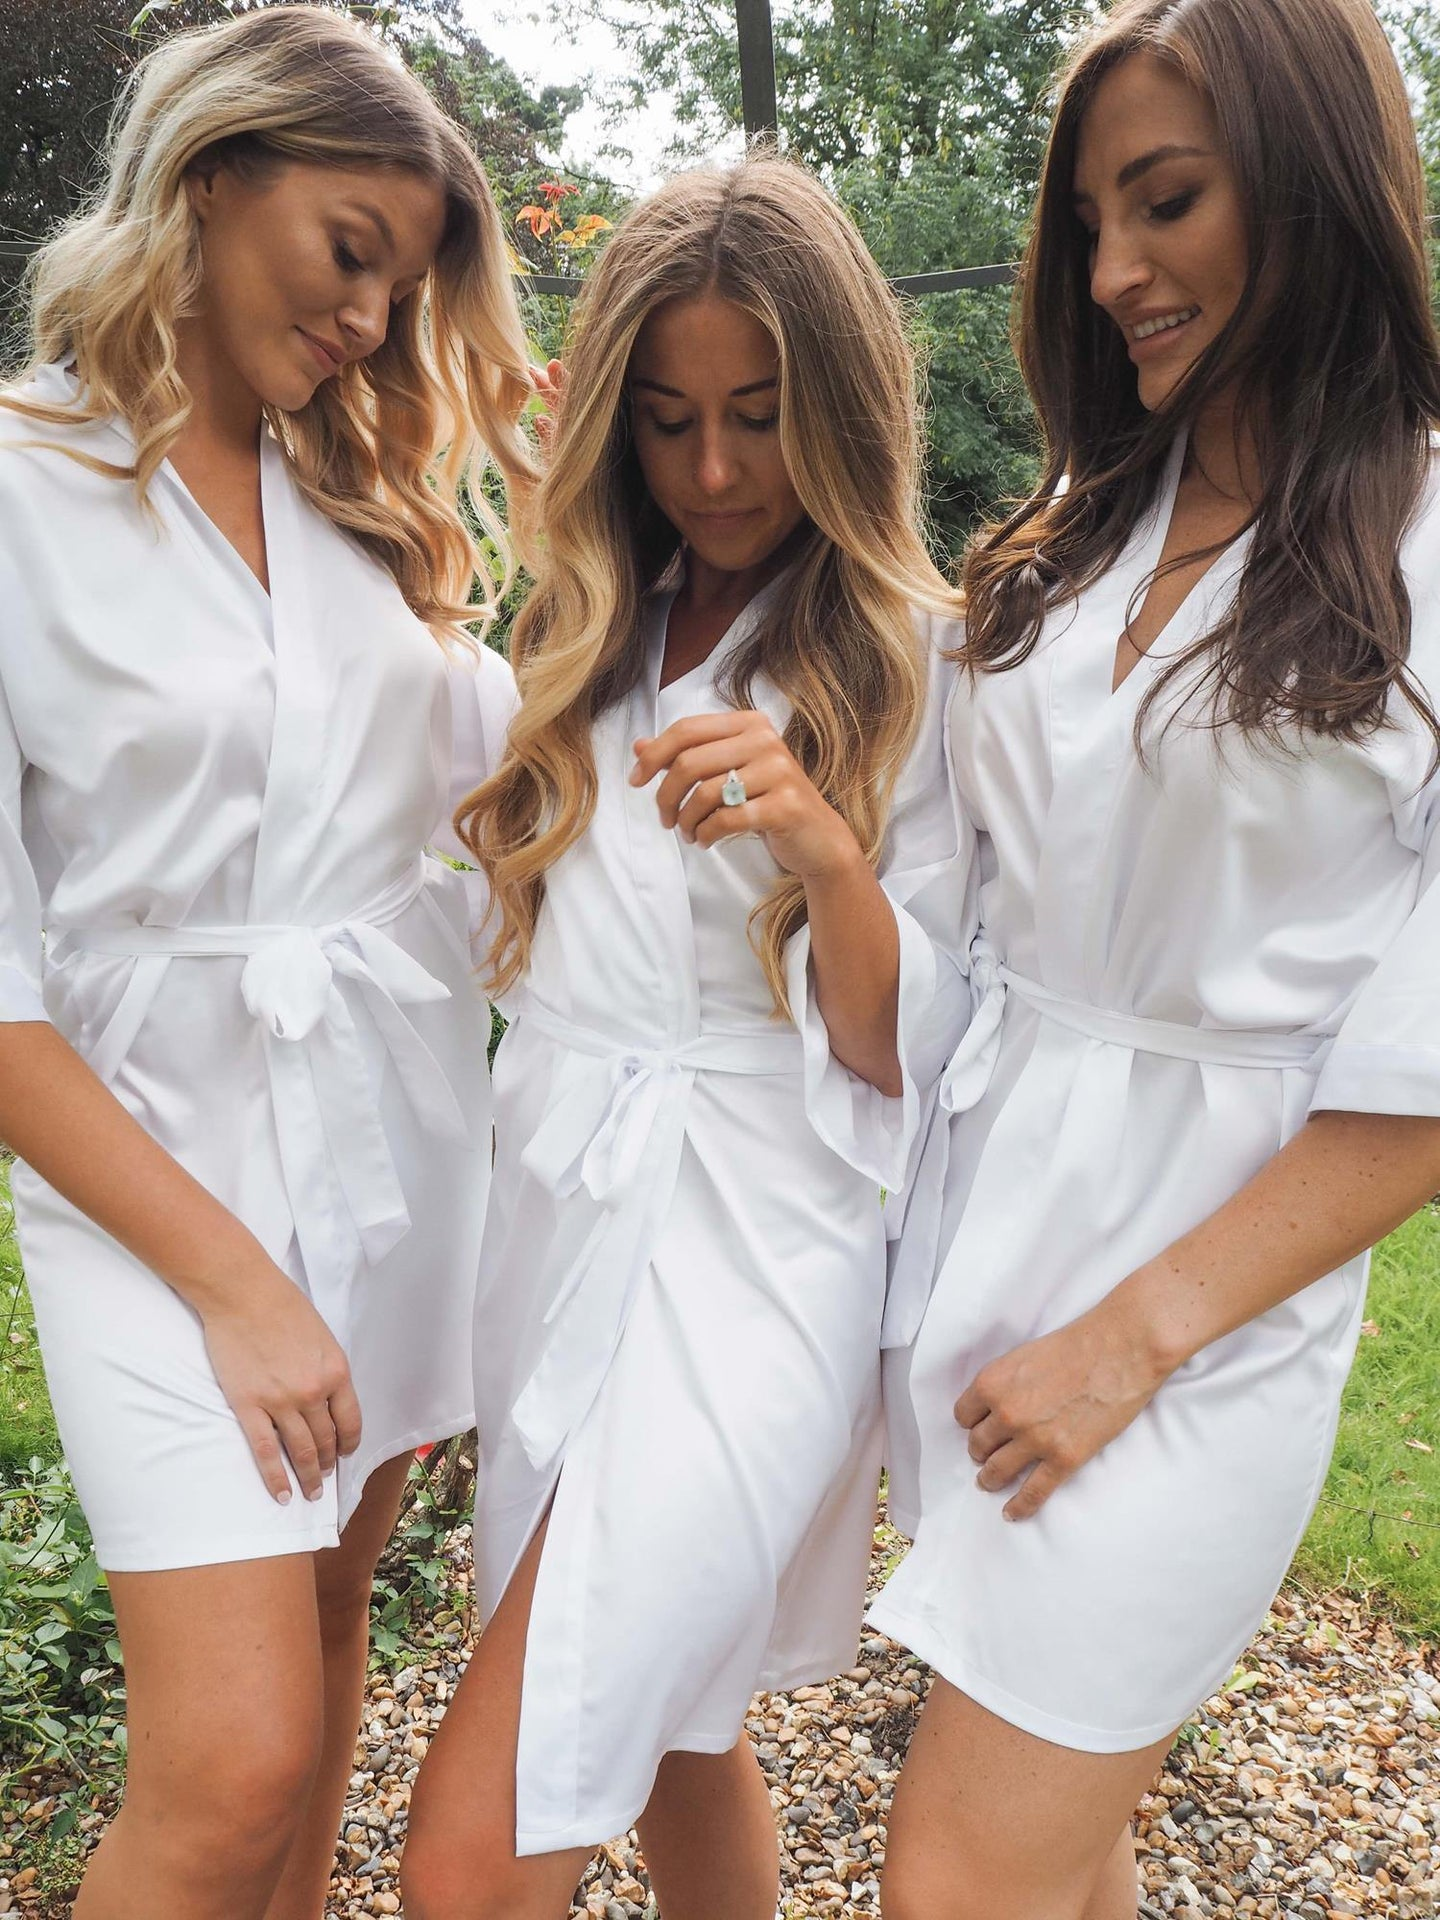 White silk bridal robes -Robes4you